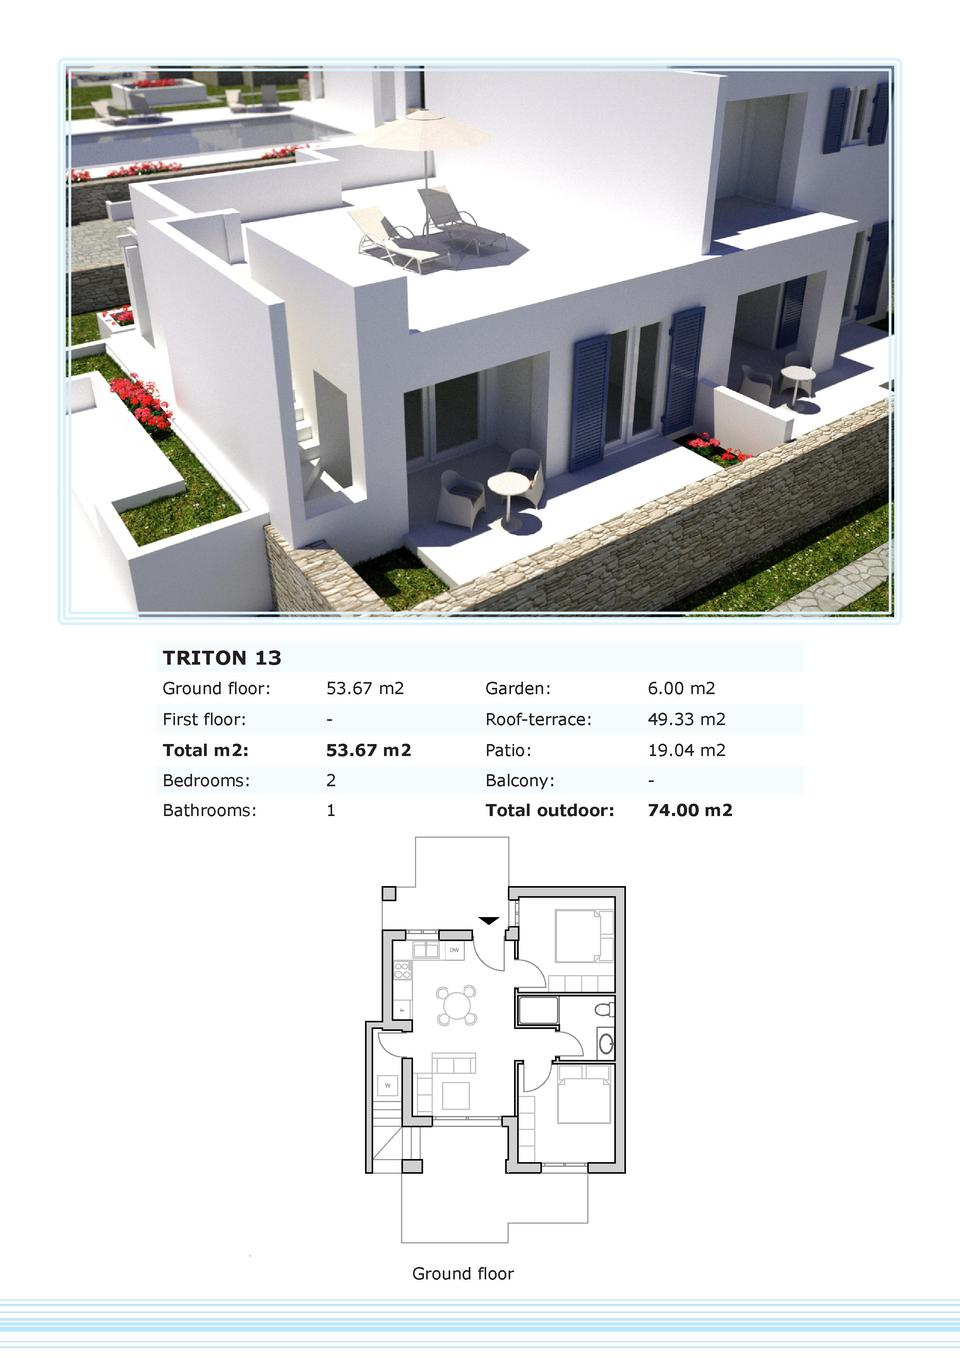 TRITON 13 Ground floor   53.67 m2  Garden   6.00 m2  First floor   -  Roof-terrace   49.33 m2  Total m2   53.67 m2  Patio ...